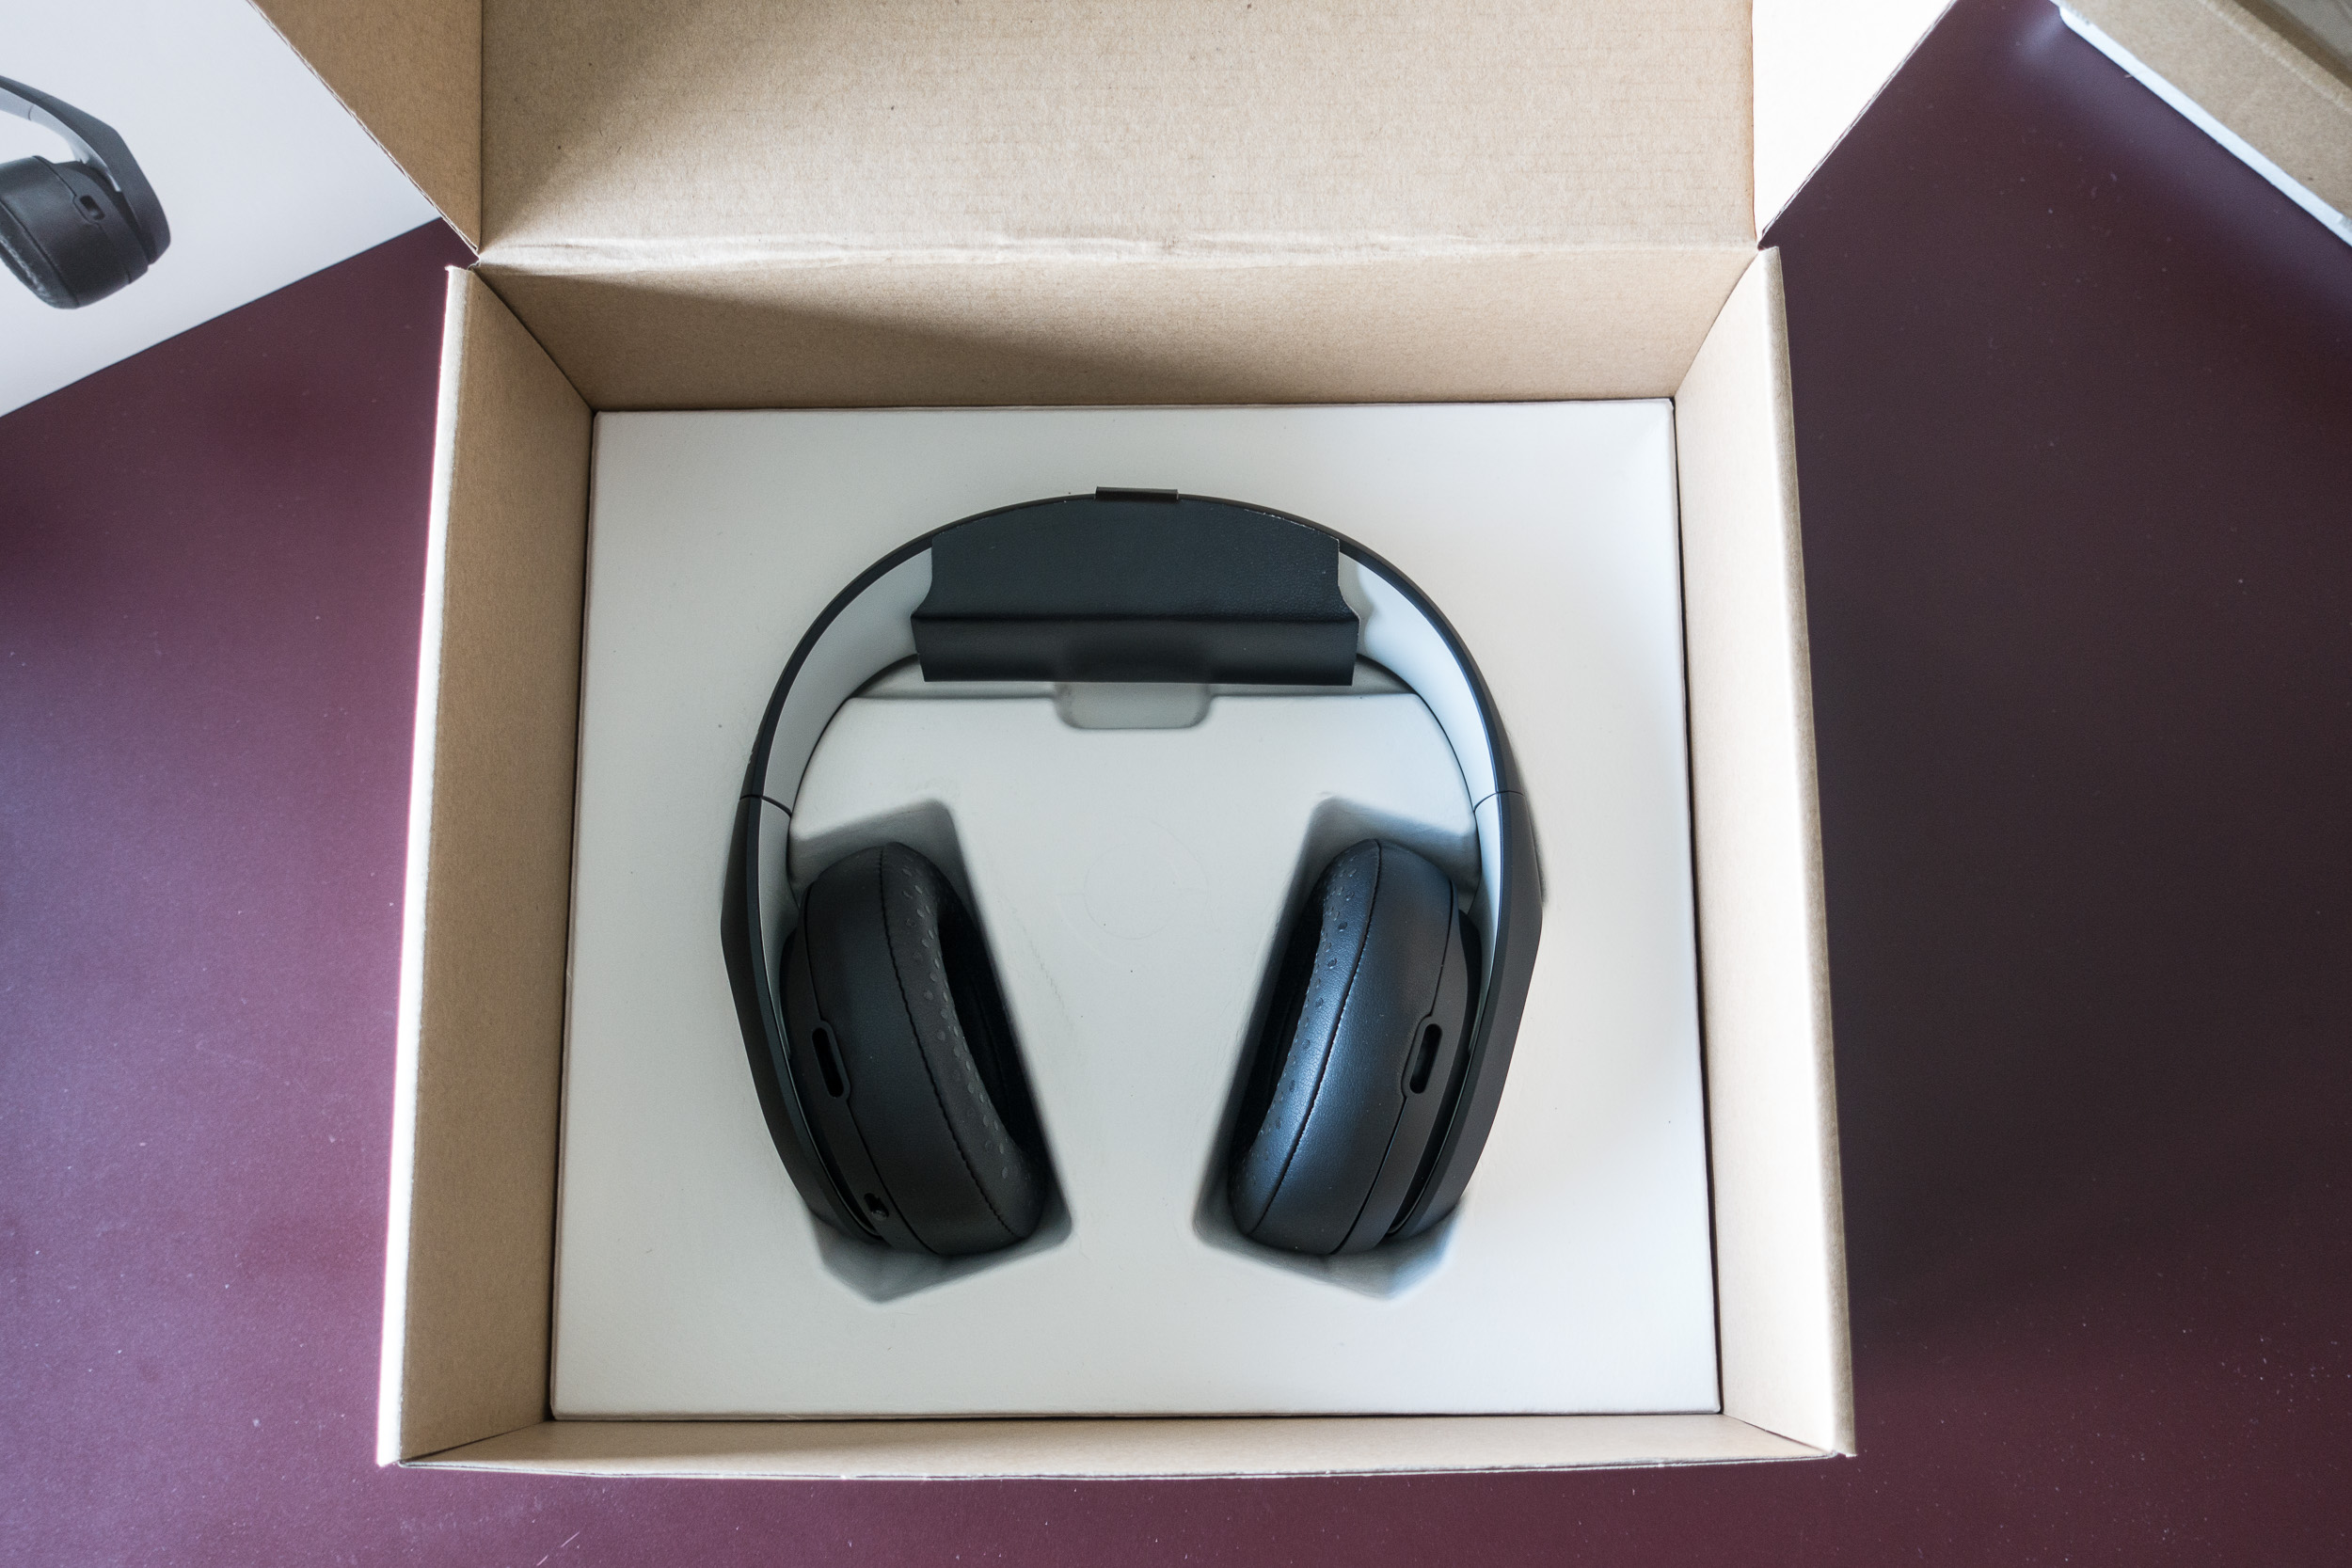 Avegant Glyph Founder's Edition, lower layer features protected headset. All packaging looks to be recyclable.